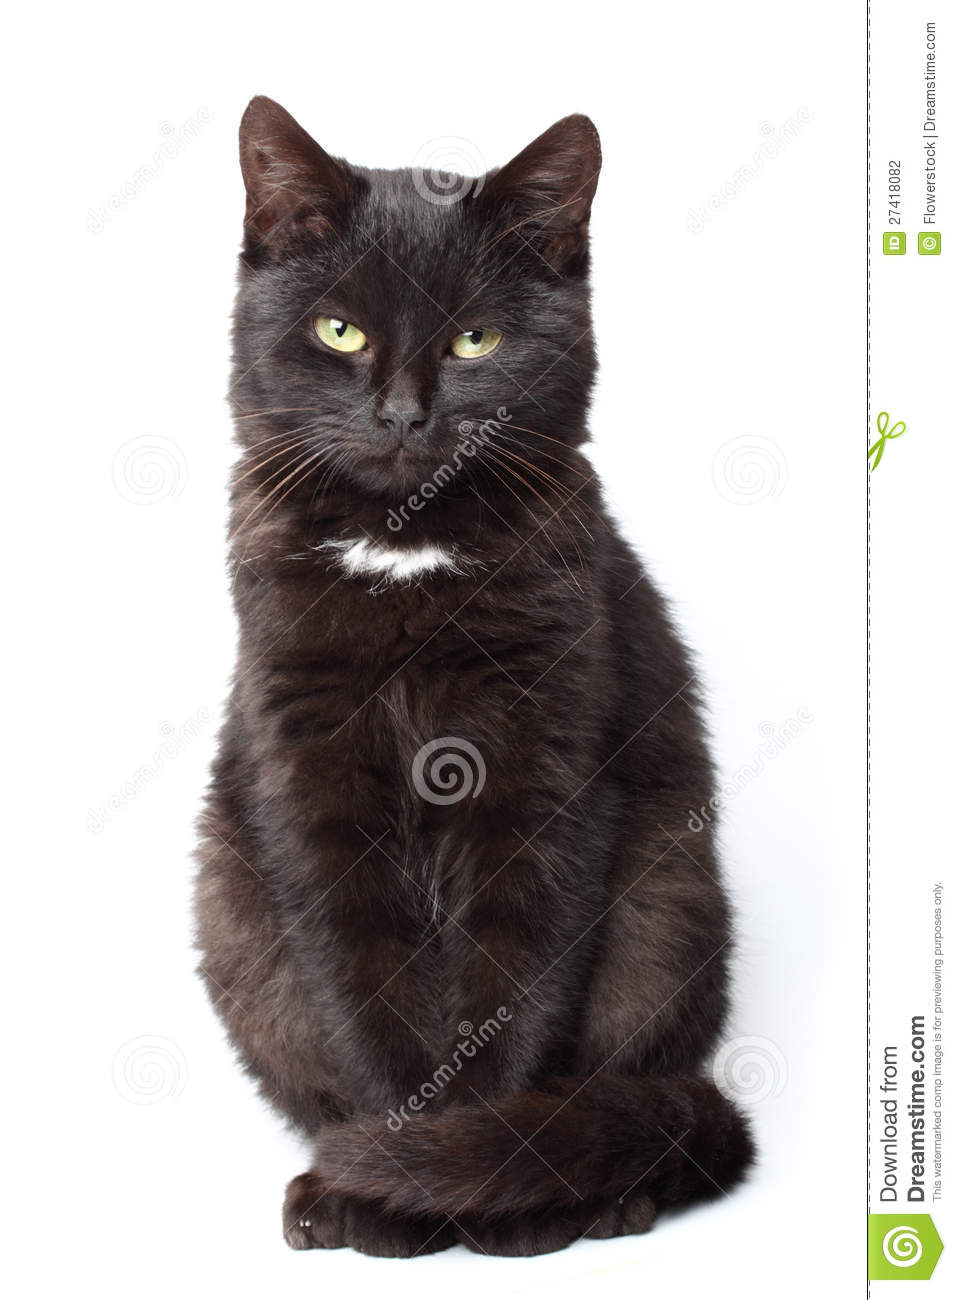 Black Cat Sitting Stock Photography - Image: 27418082